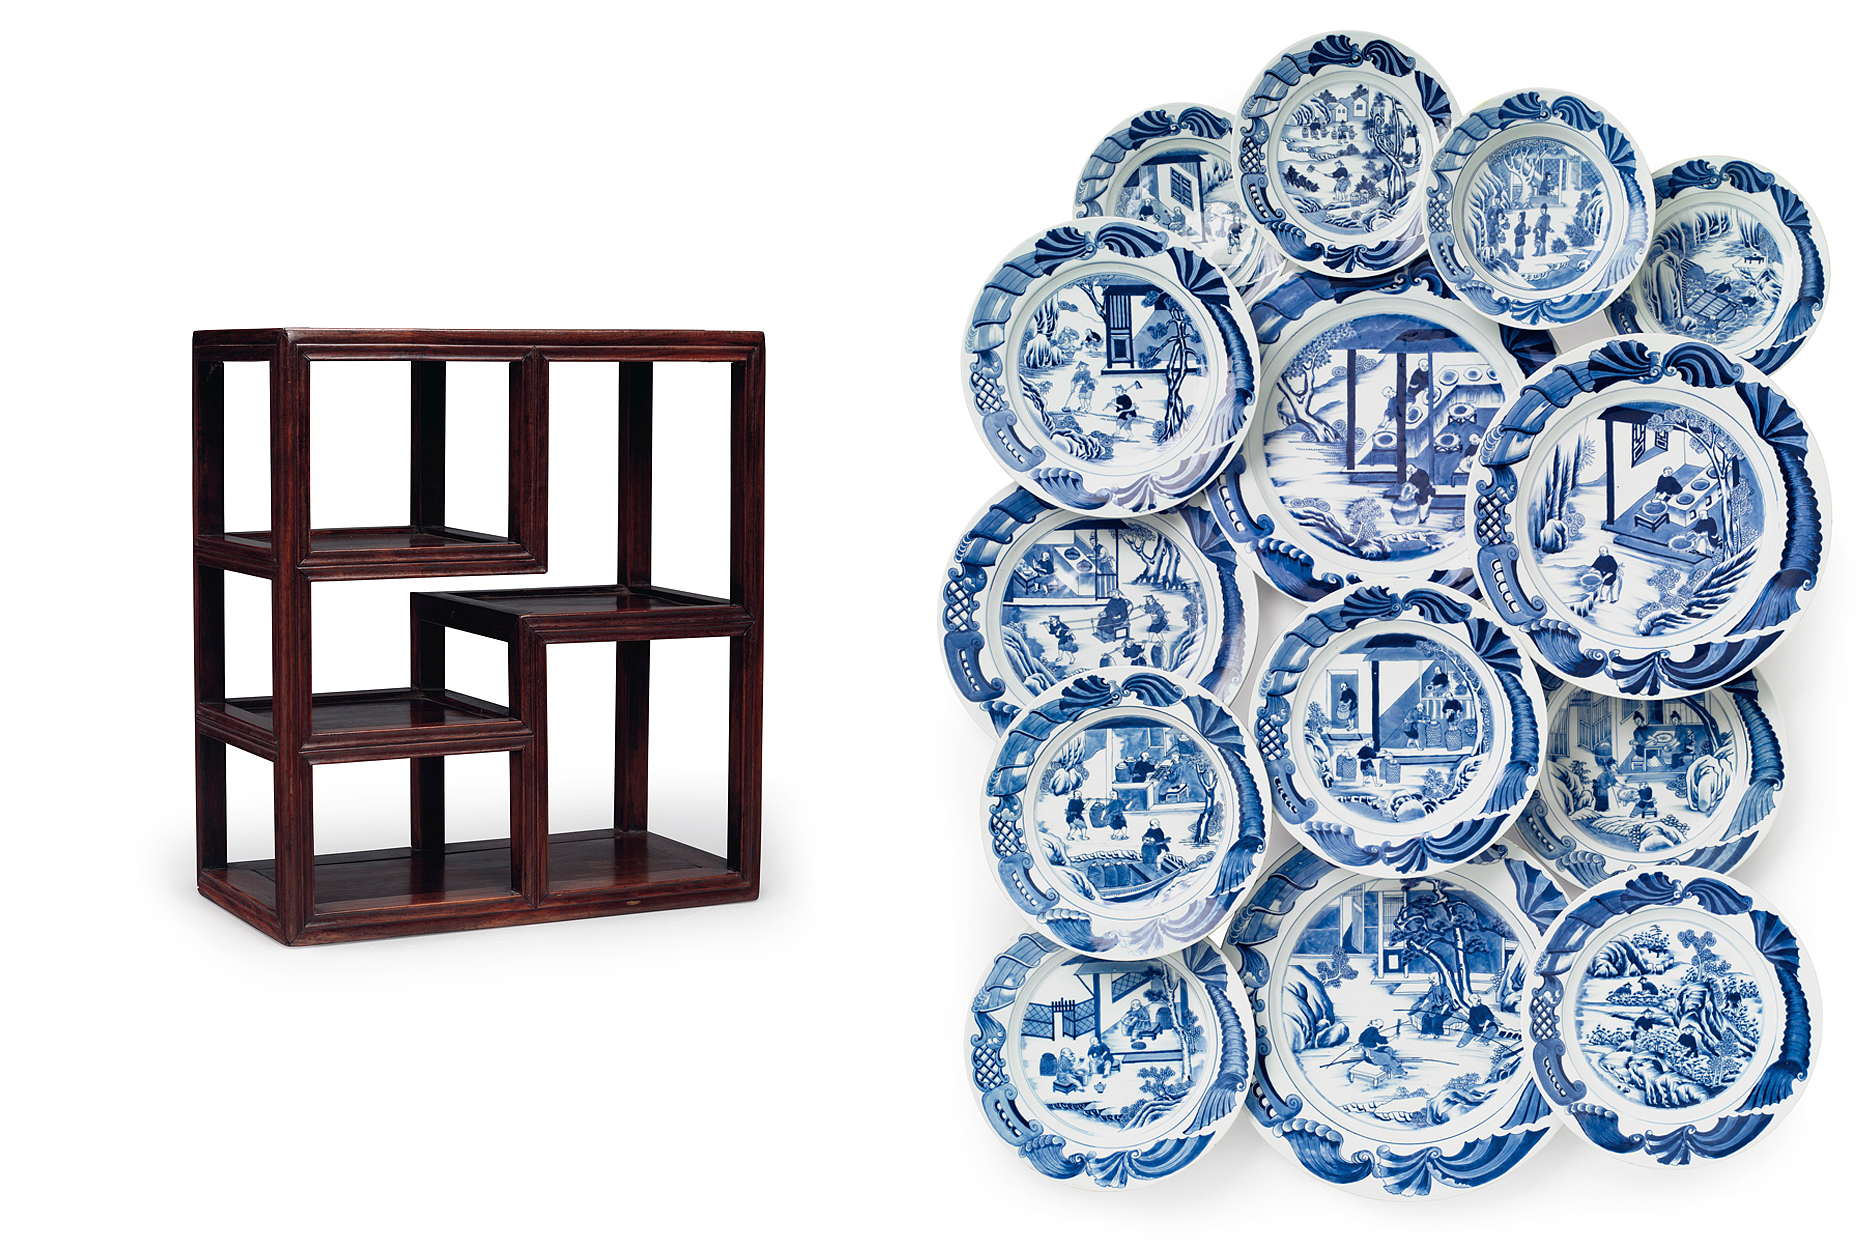 A wooden Chinese furniture piece and a collection of blue and white porcelain plates